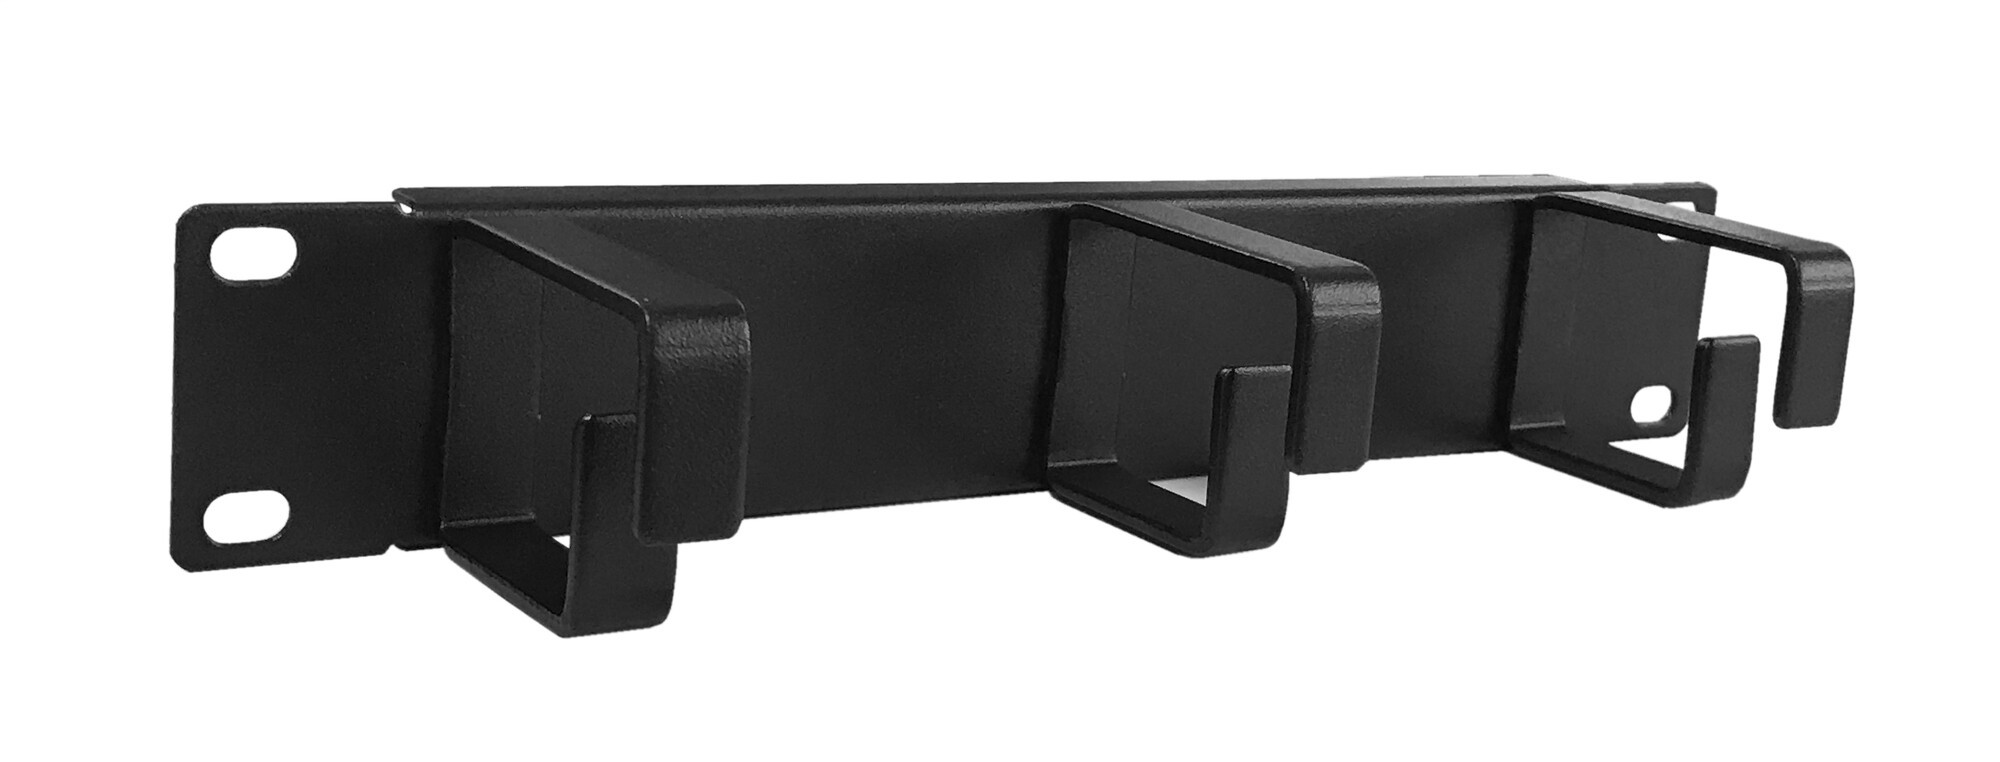 Afbeelding van 10 inch cable tray with 3 hooks - 1U